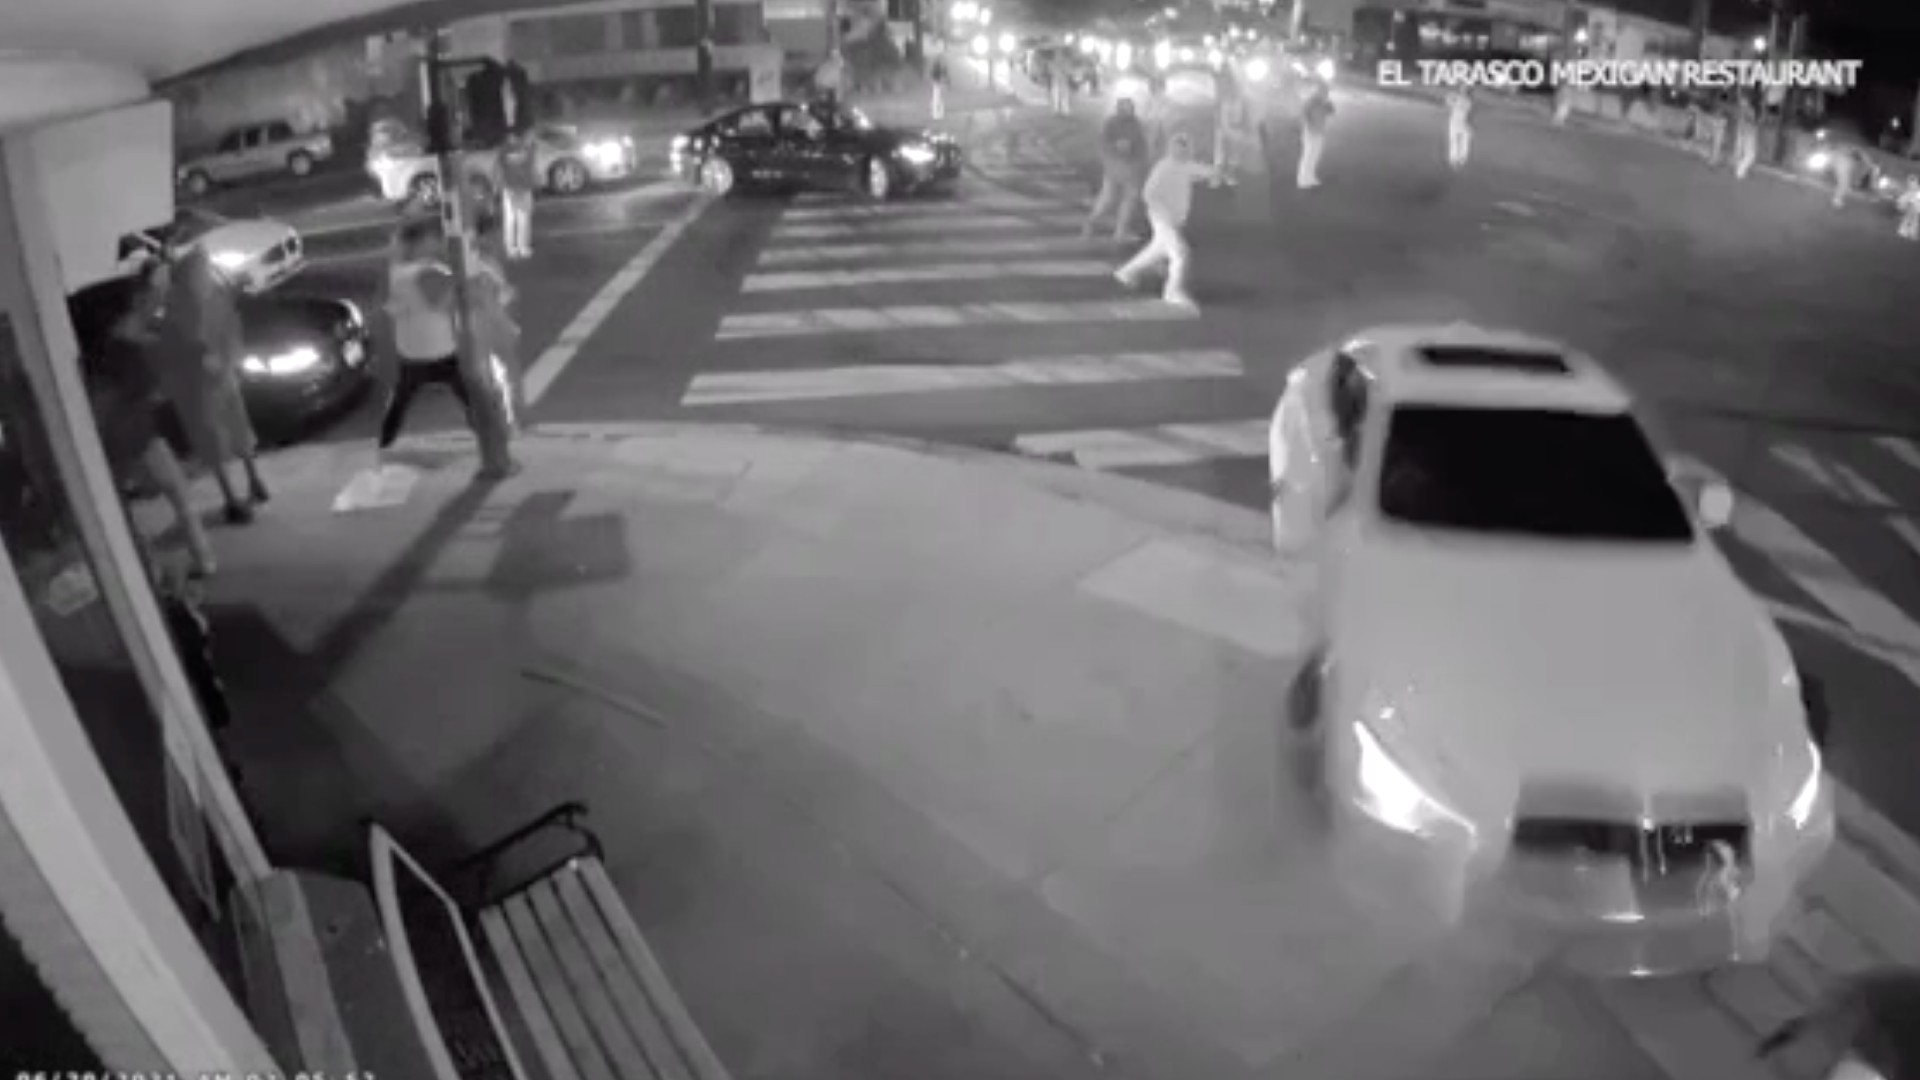 Security video from early Sunday morning caught the moment a Sylmar street takeover ended with a car up on the sidewalk and a girl jumping out of the way just before the car slammed into an empty restaurant. (El Tarasco Mexican Restaurant)